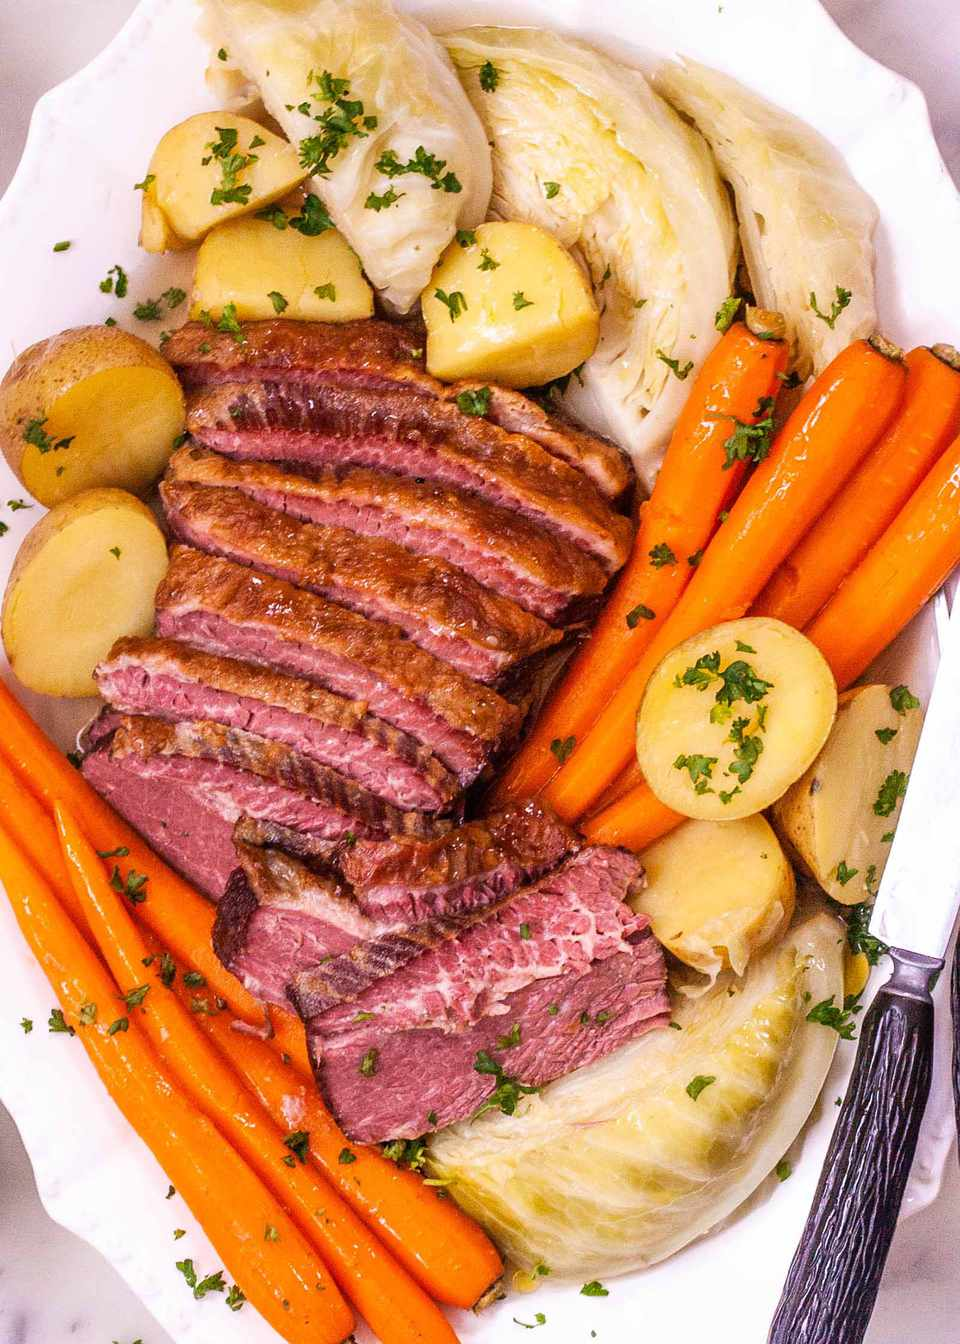 How to Boil Corned Beef and Cabbage - platter of sliced corned beef, carrots, potatoes, and cabbage sprinkled with herbs